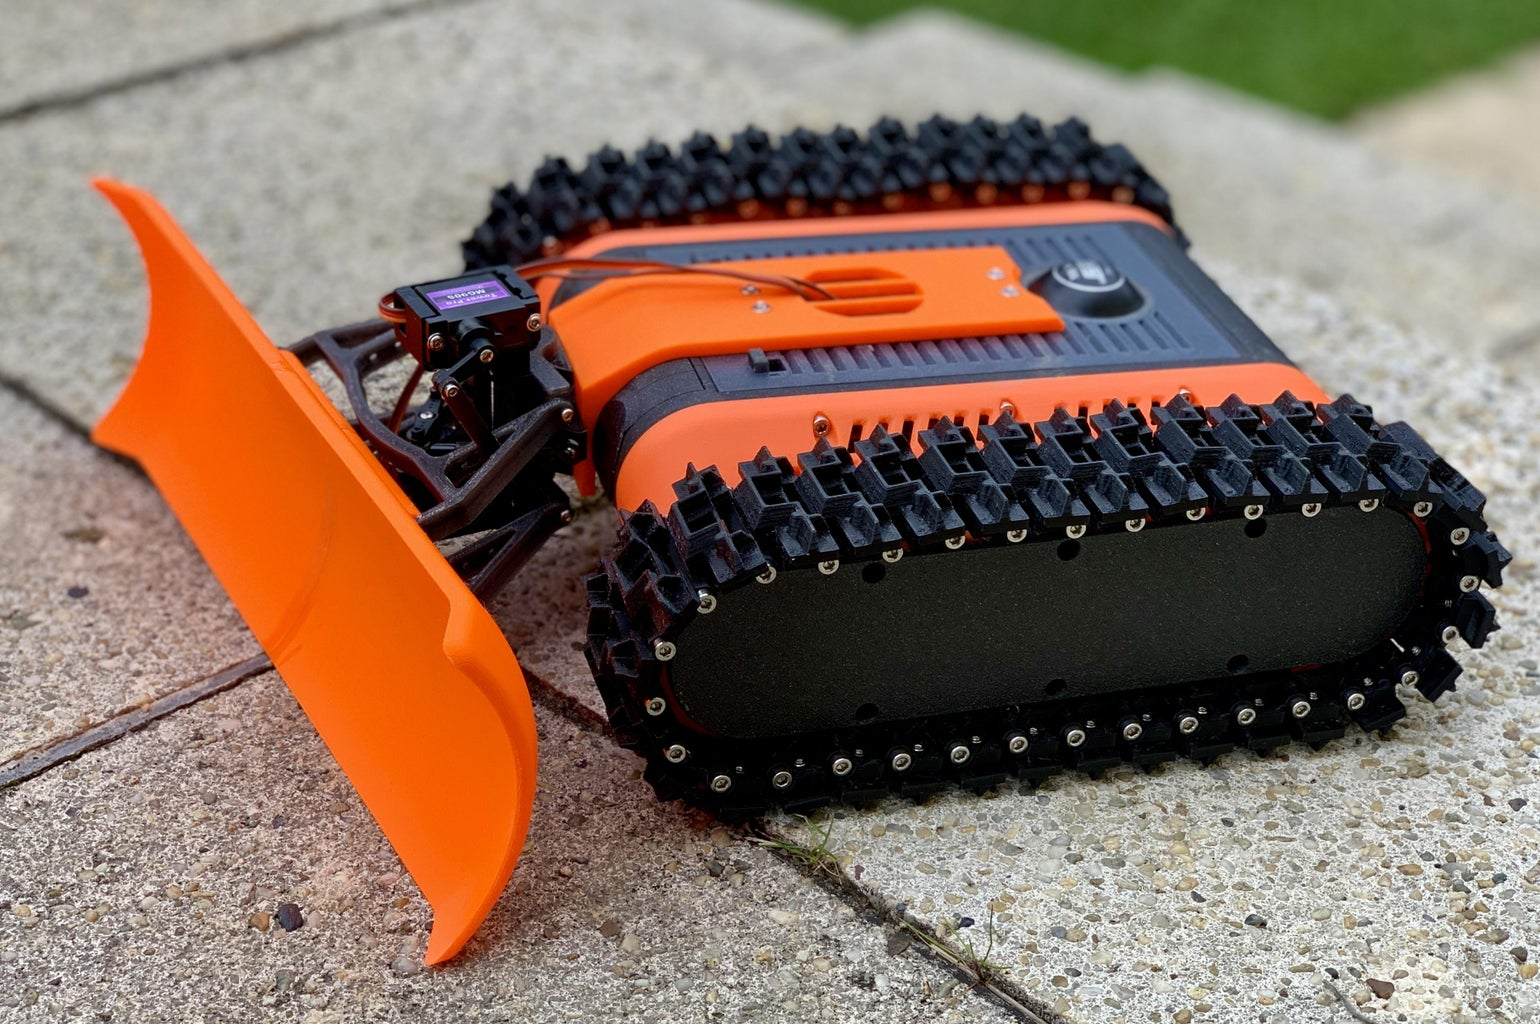 Snow Plow for the FPV Rover